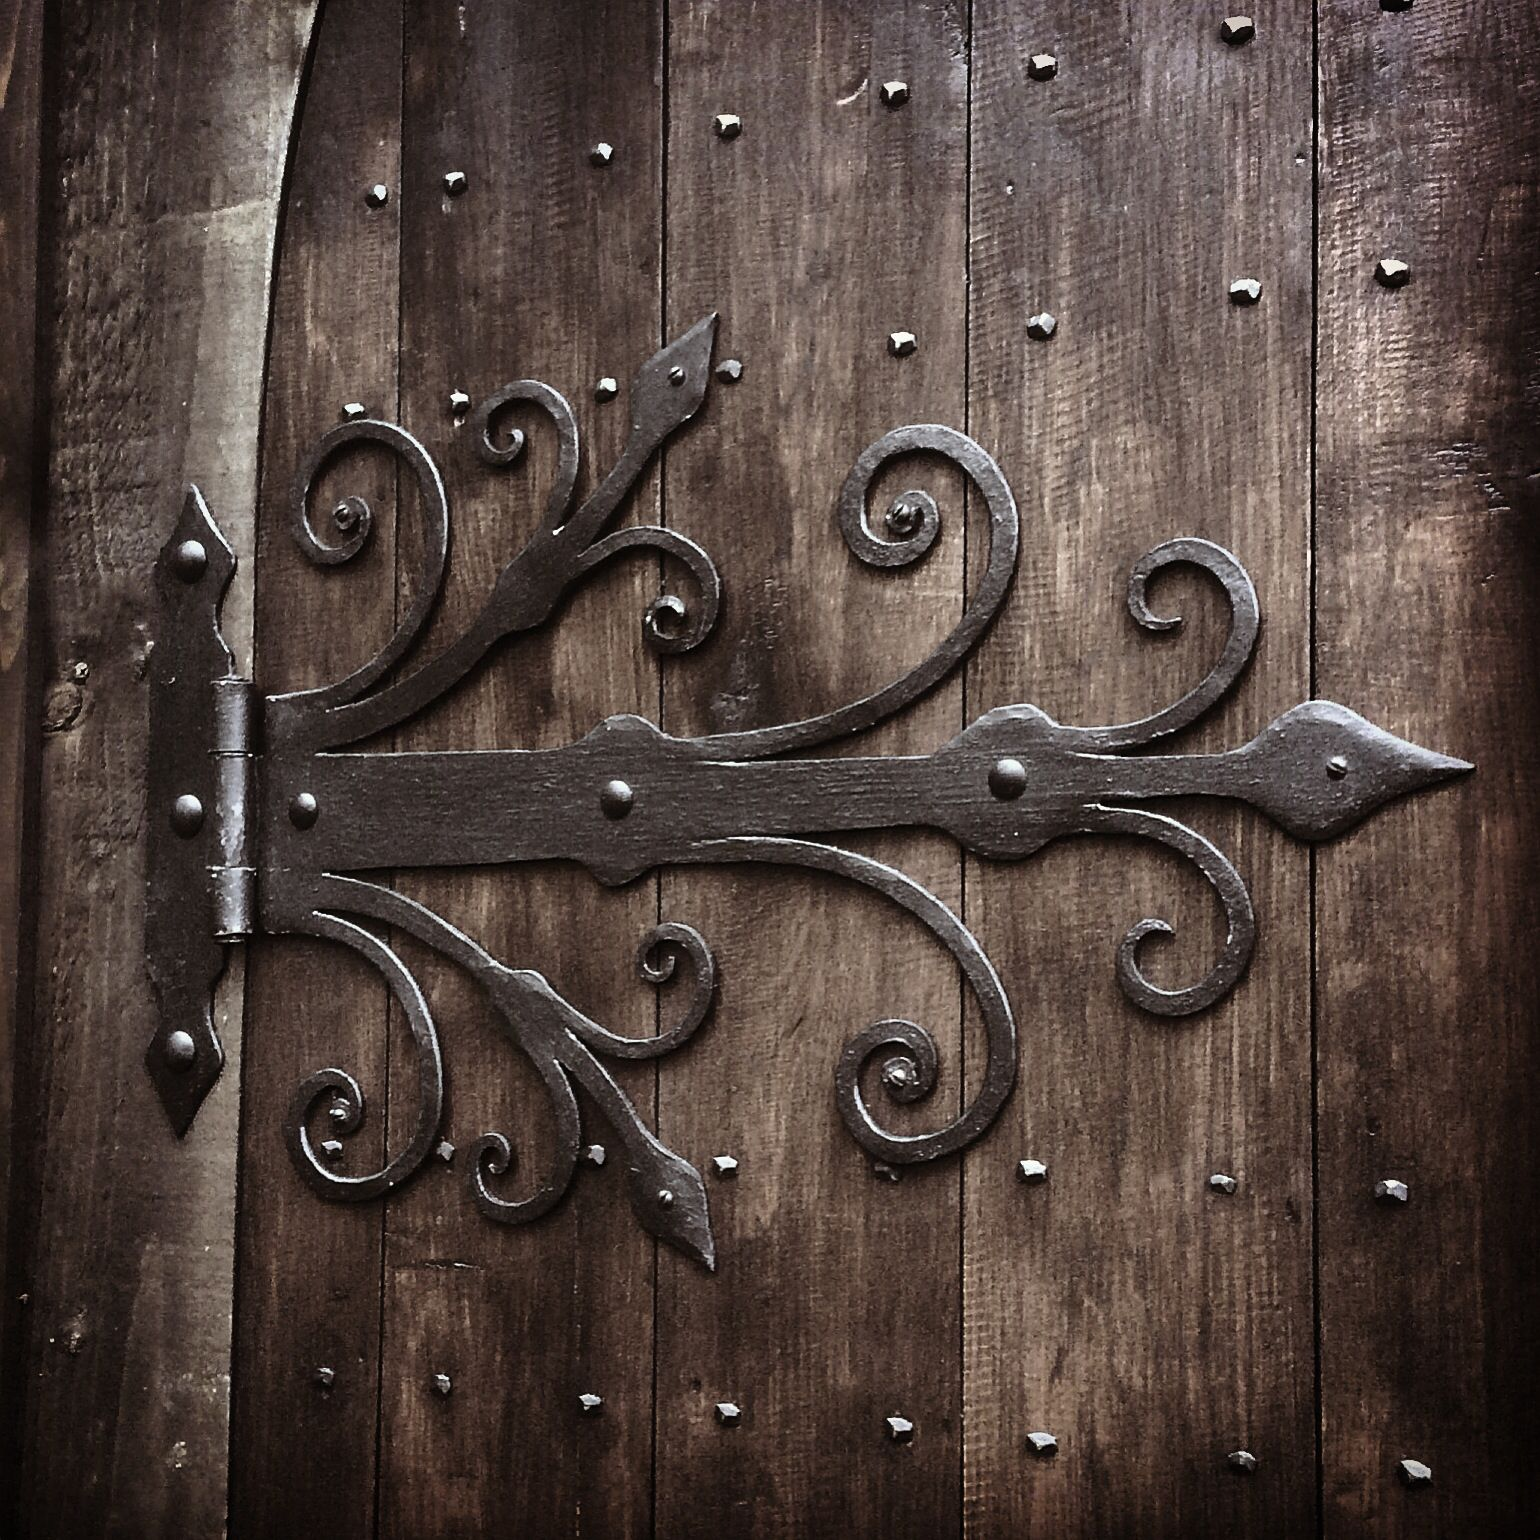 Exceptional Medieval Hinges Made By Blacksmiths At Gofannon Forge.